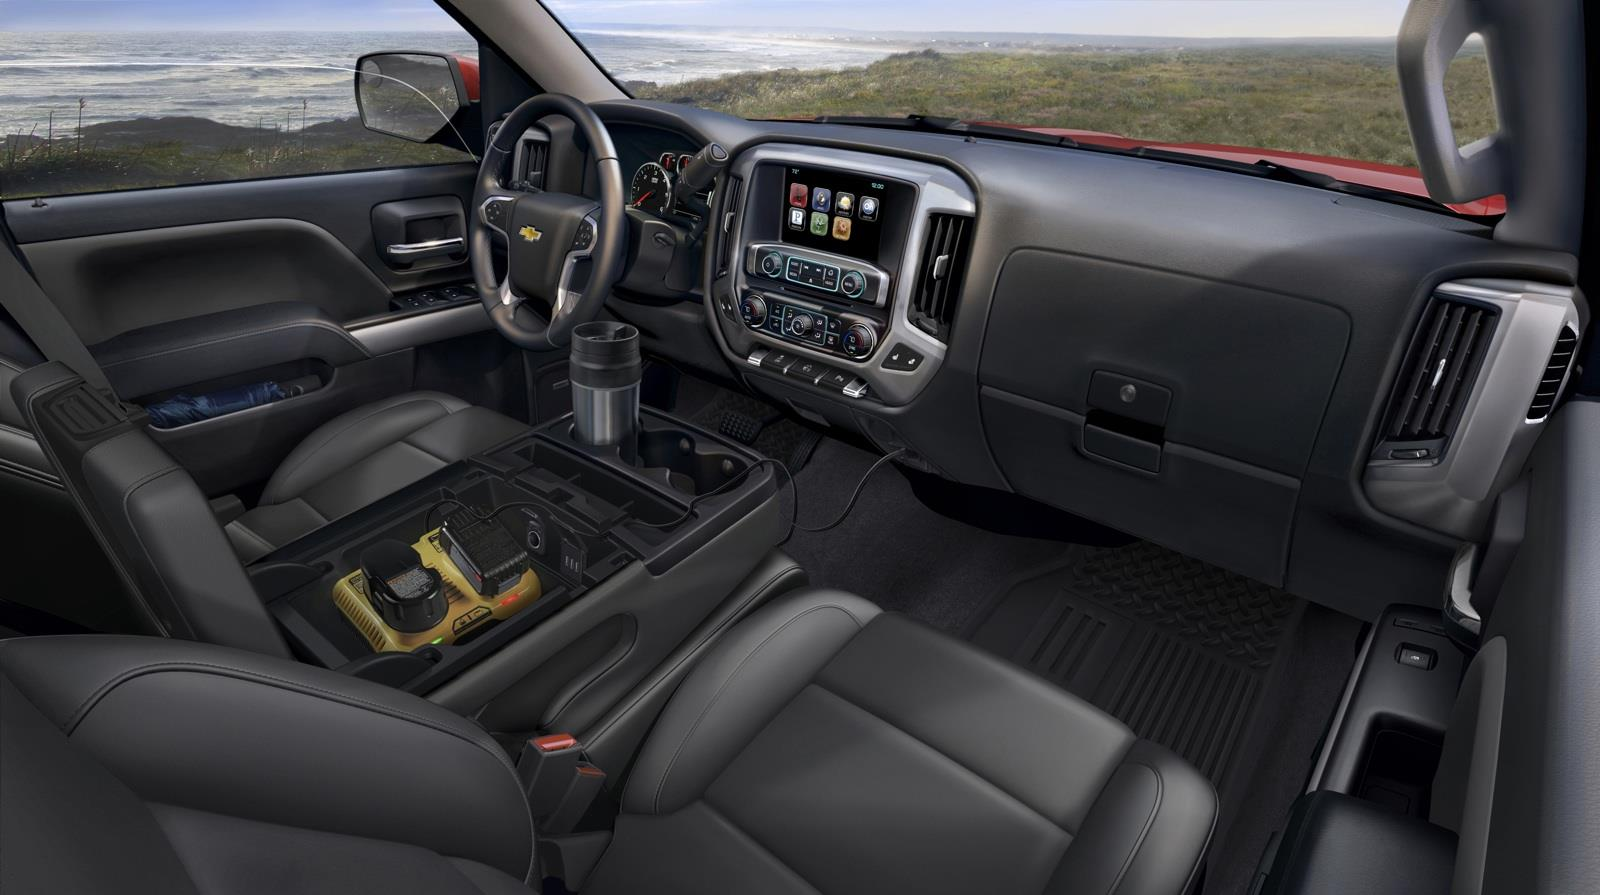 Renault Duster Car Accessories India further 2013 Buick Encore Review Release Date Interior Prices together with 2015 Chevrolet Colorado Camouflage Seat Cover also Silverado Tuscany Edition as well 2016 Lincoln Navigator Pictures. on gmc terrain seat covers